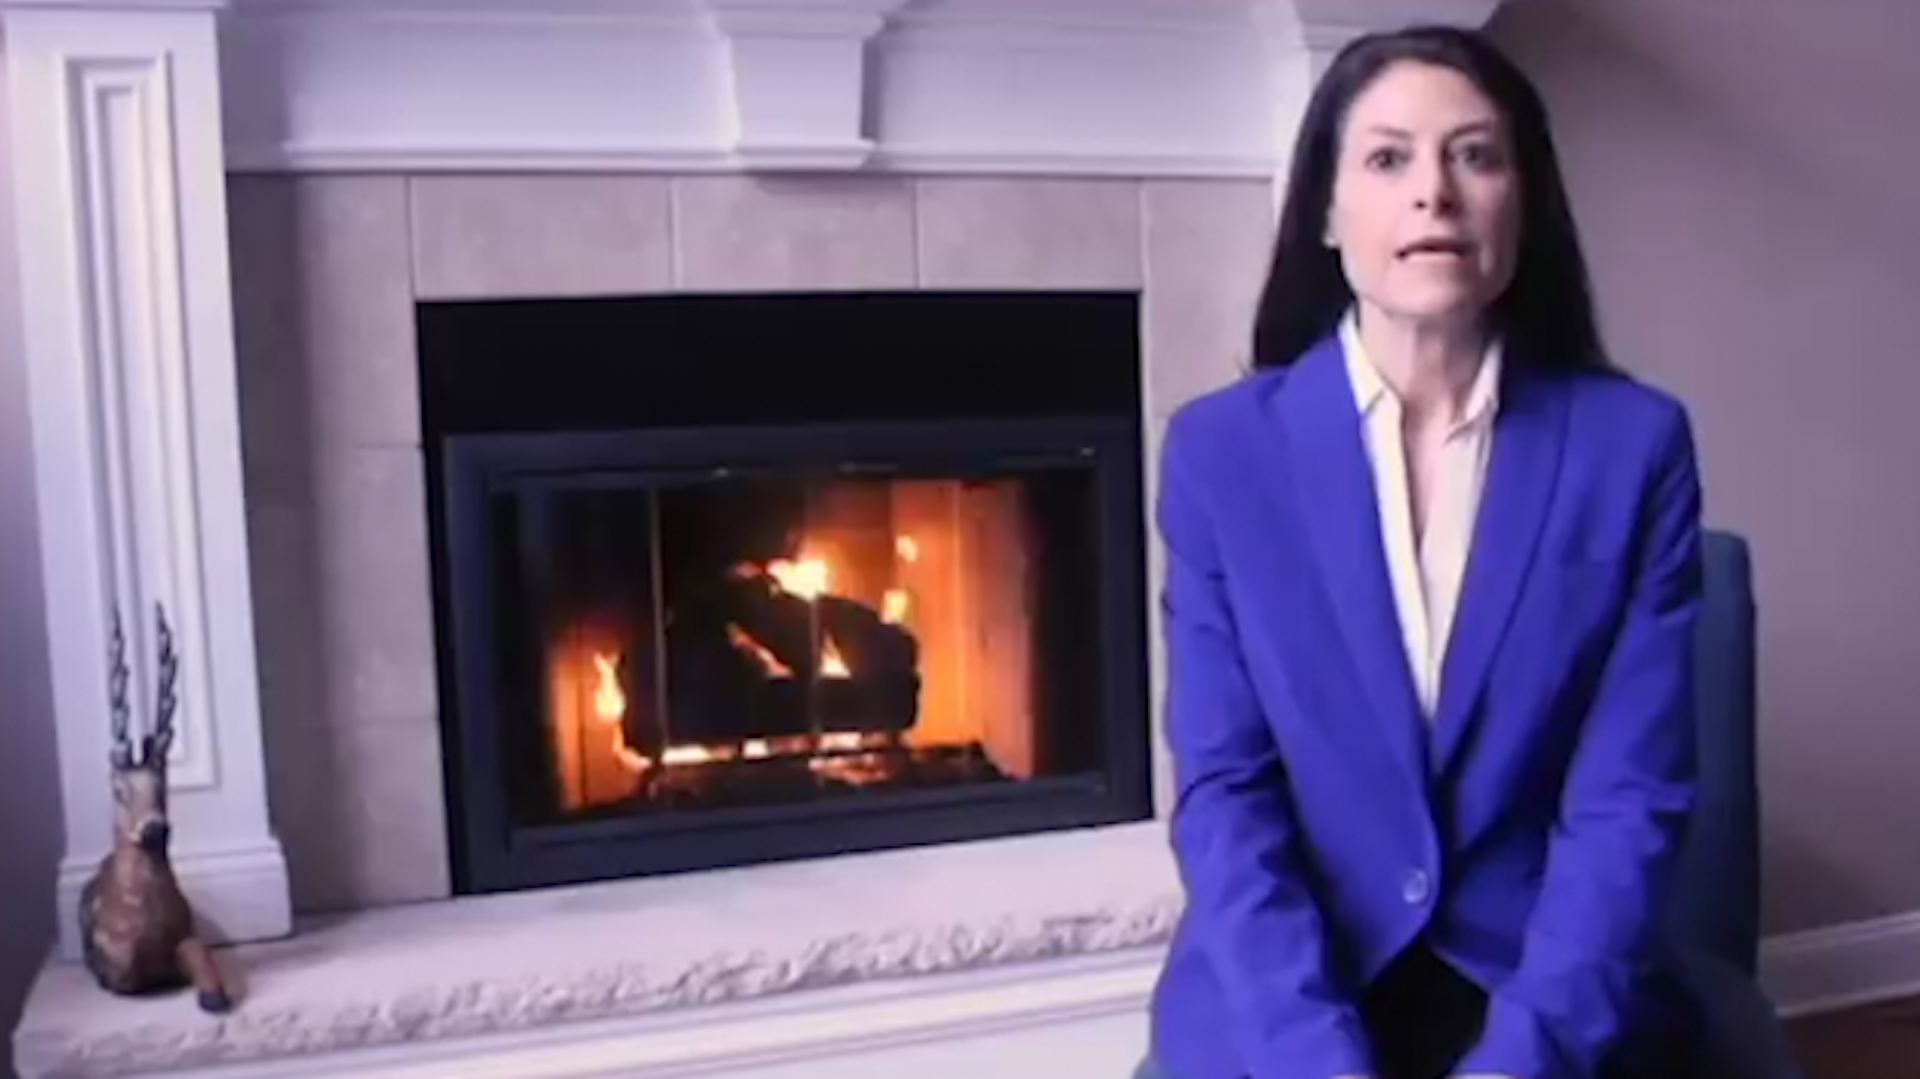 A woman's bold campaign ad points out the one thing she doesn't have